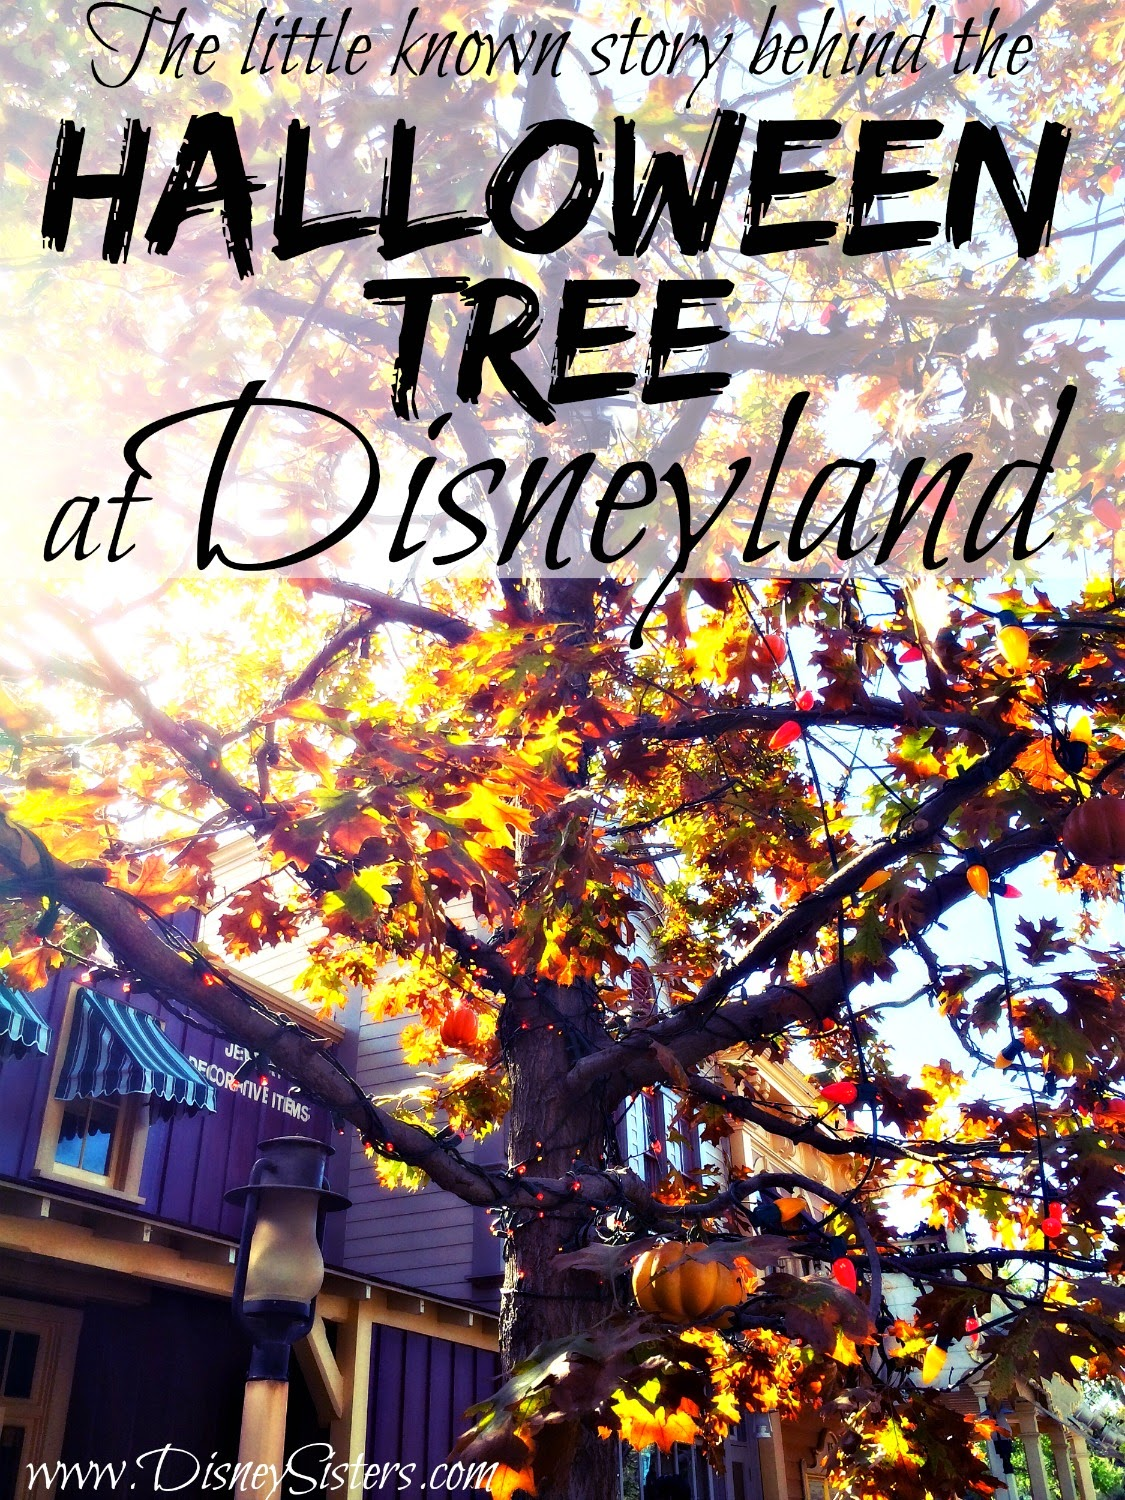 Disney Sisters: The Story Behind 'The Halloween Tree' at ...